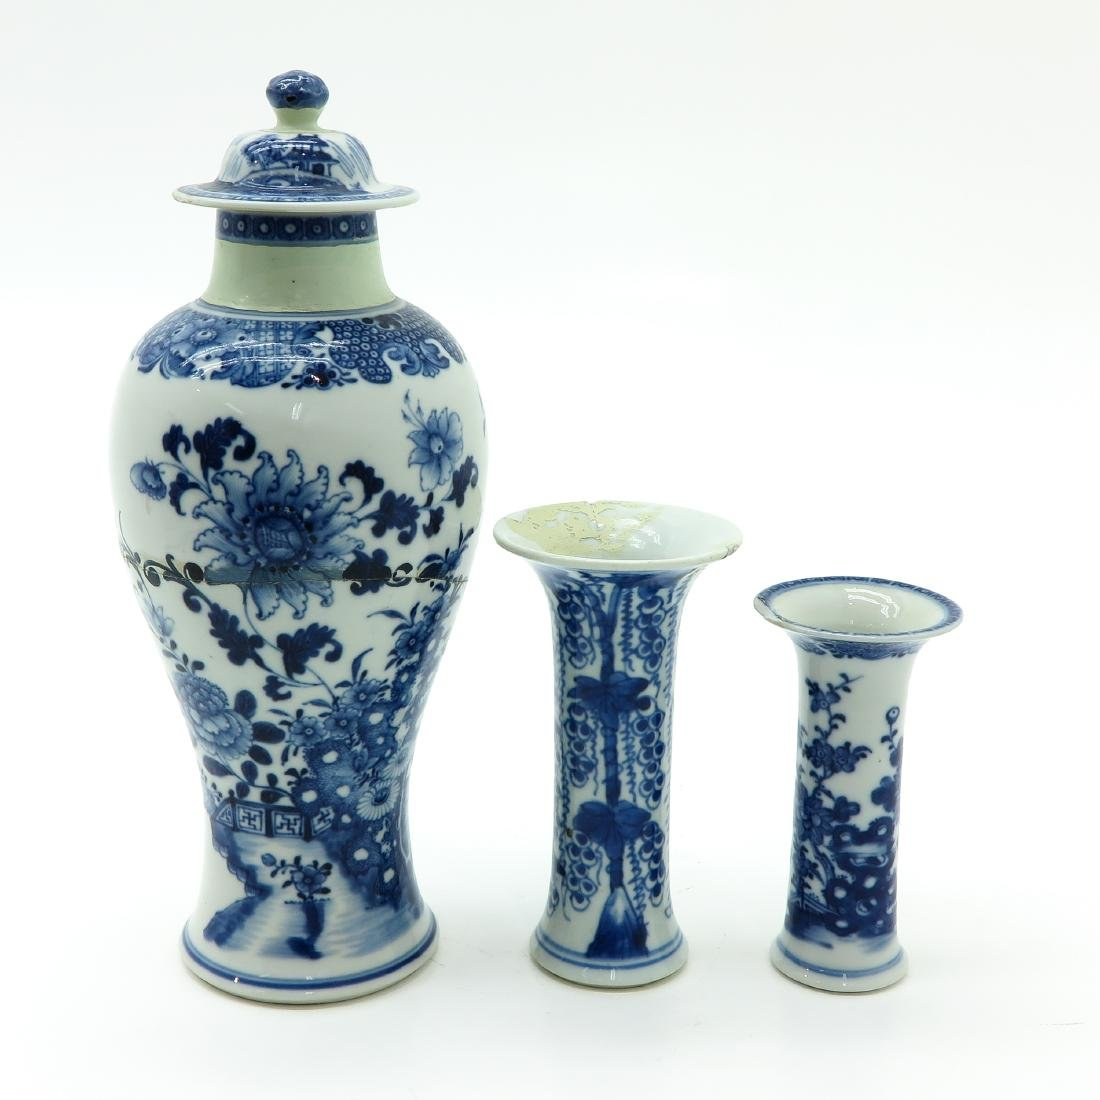 Lot of 3 Blue and White Vases